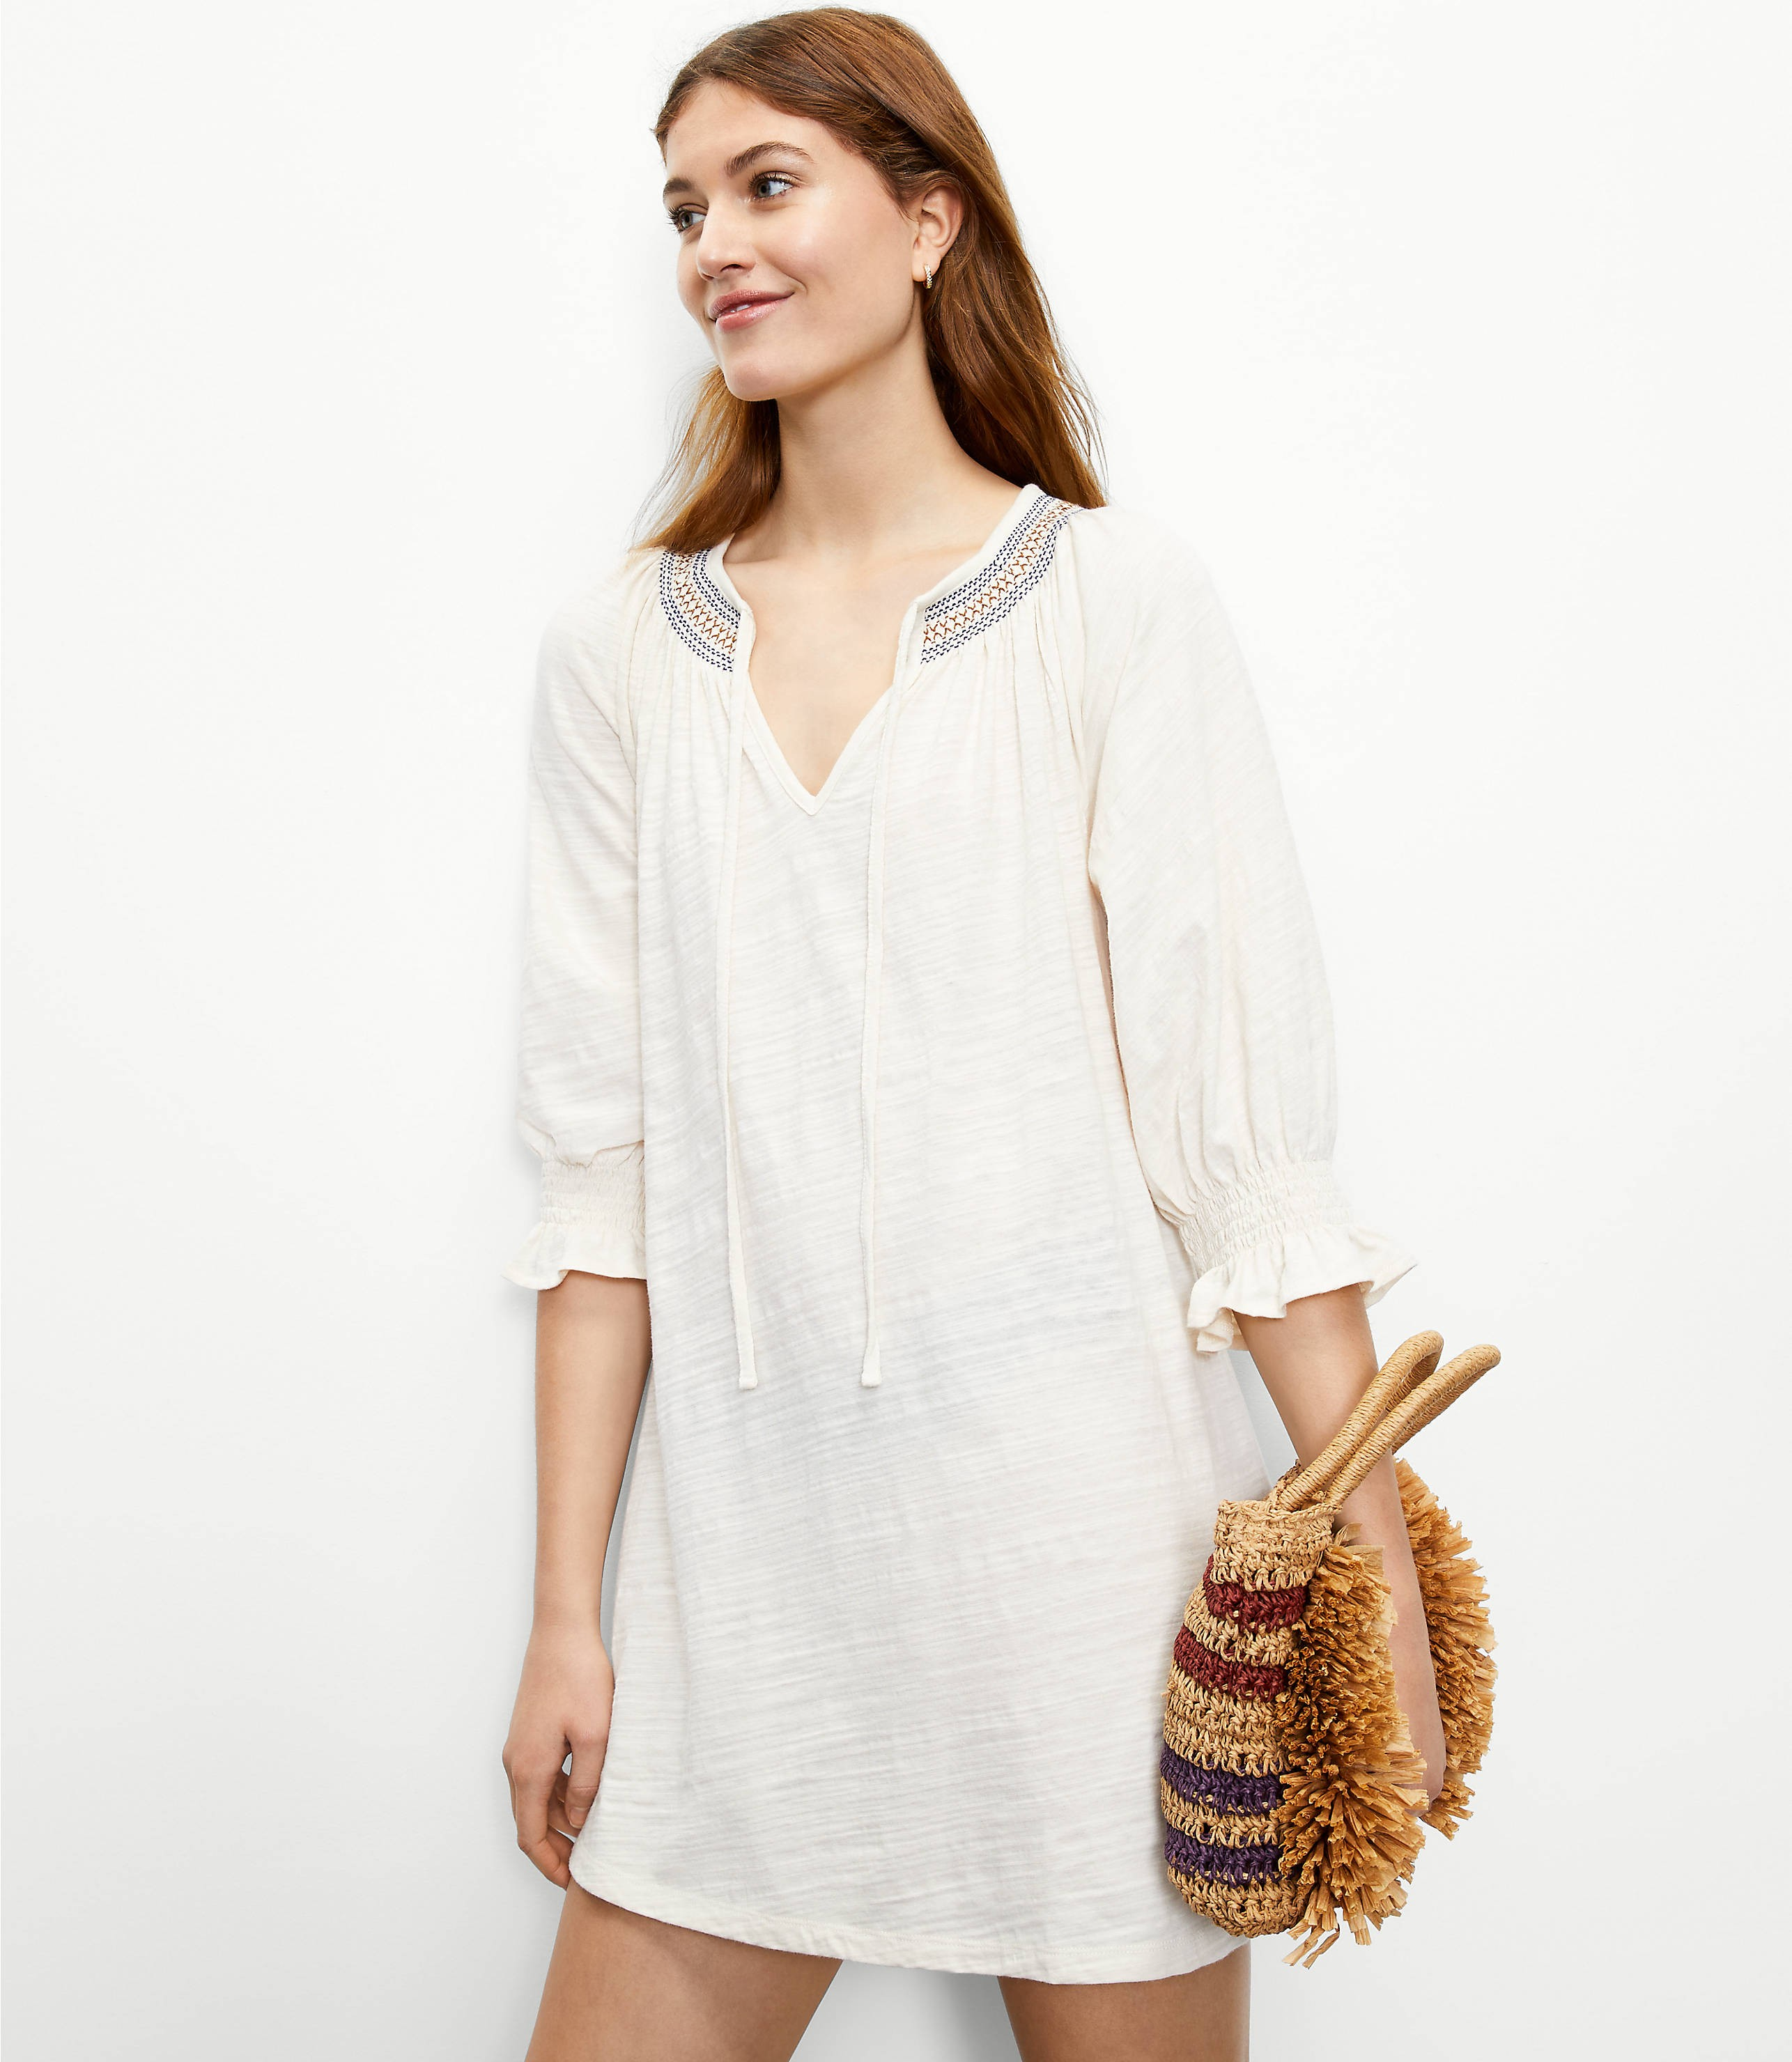 Loft Beach Embroidered Tie Neck Coverup Swimsuit